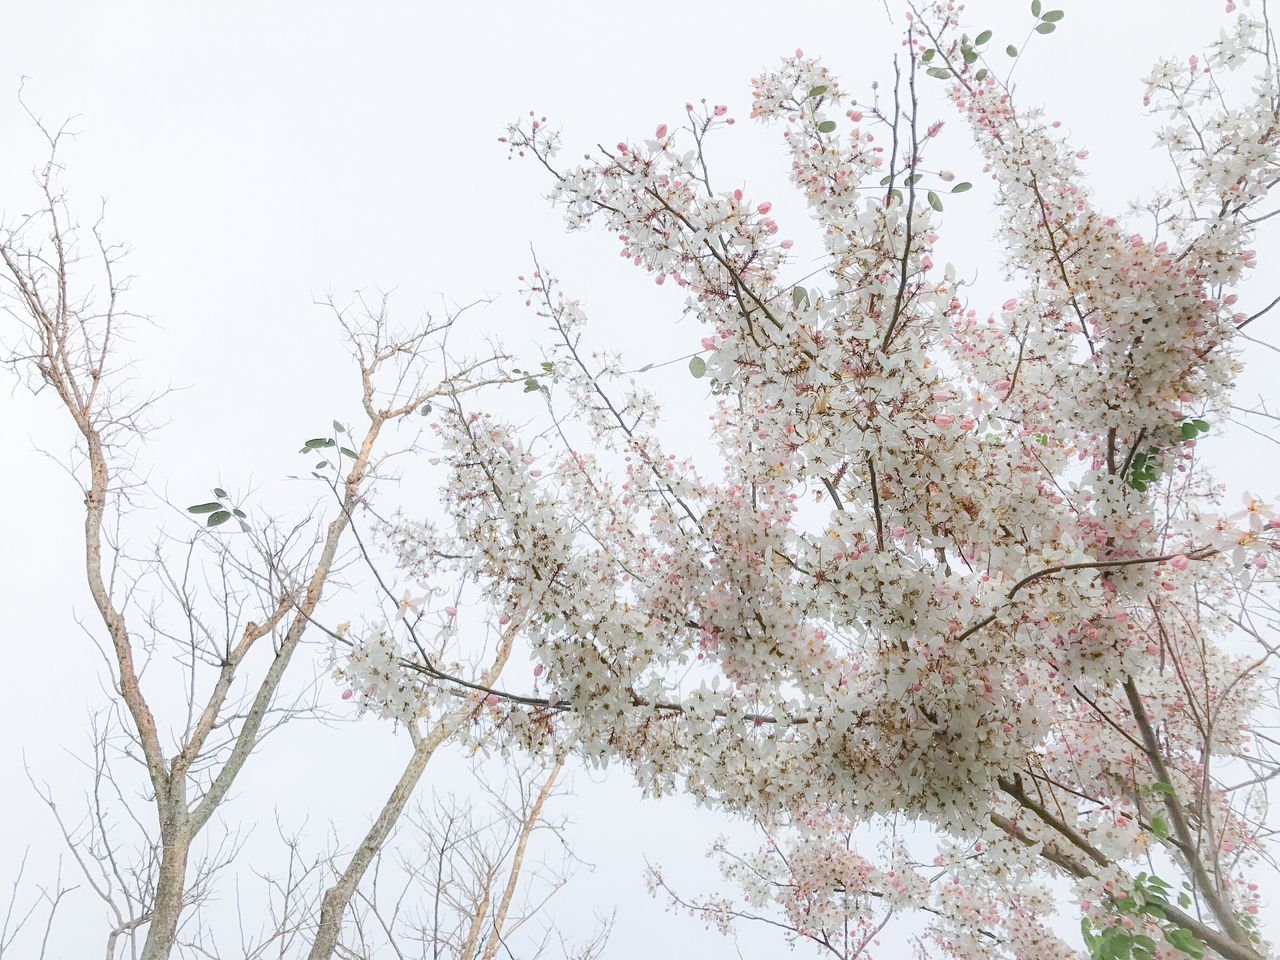 tree, nature, branch, beauty in nature, growth, low angle view, flower, no people, clear sky, outdoors, day, freshness, sky